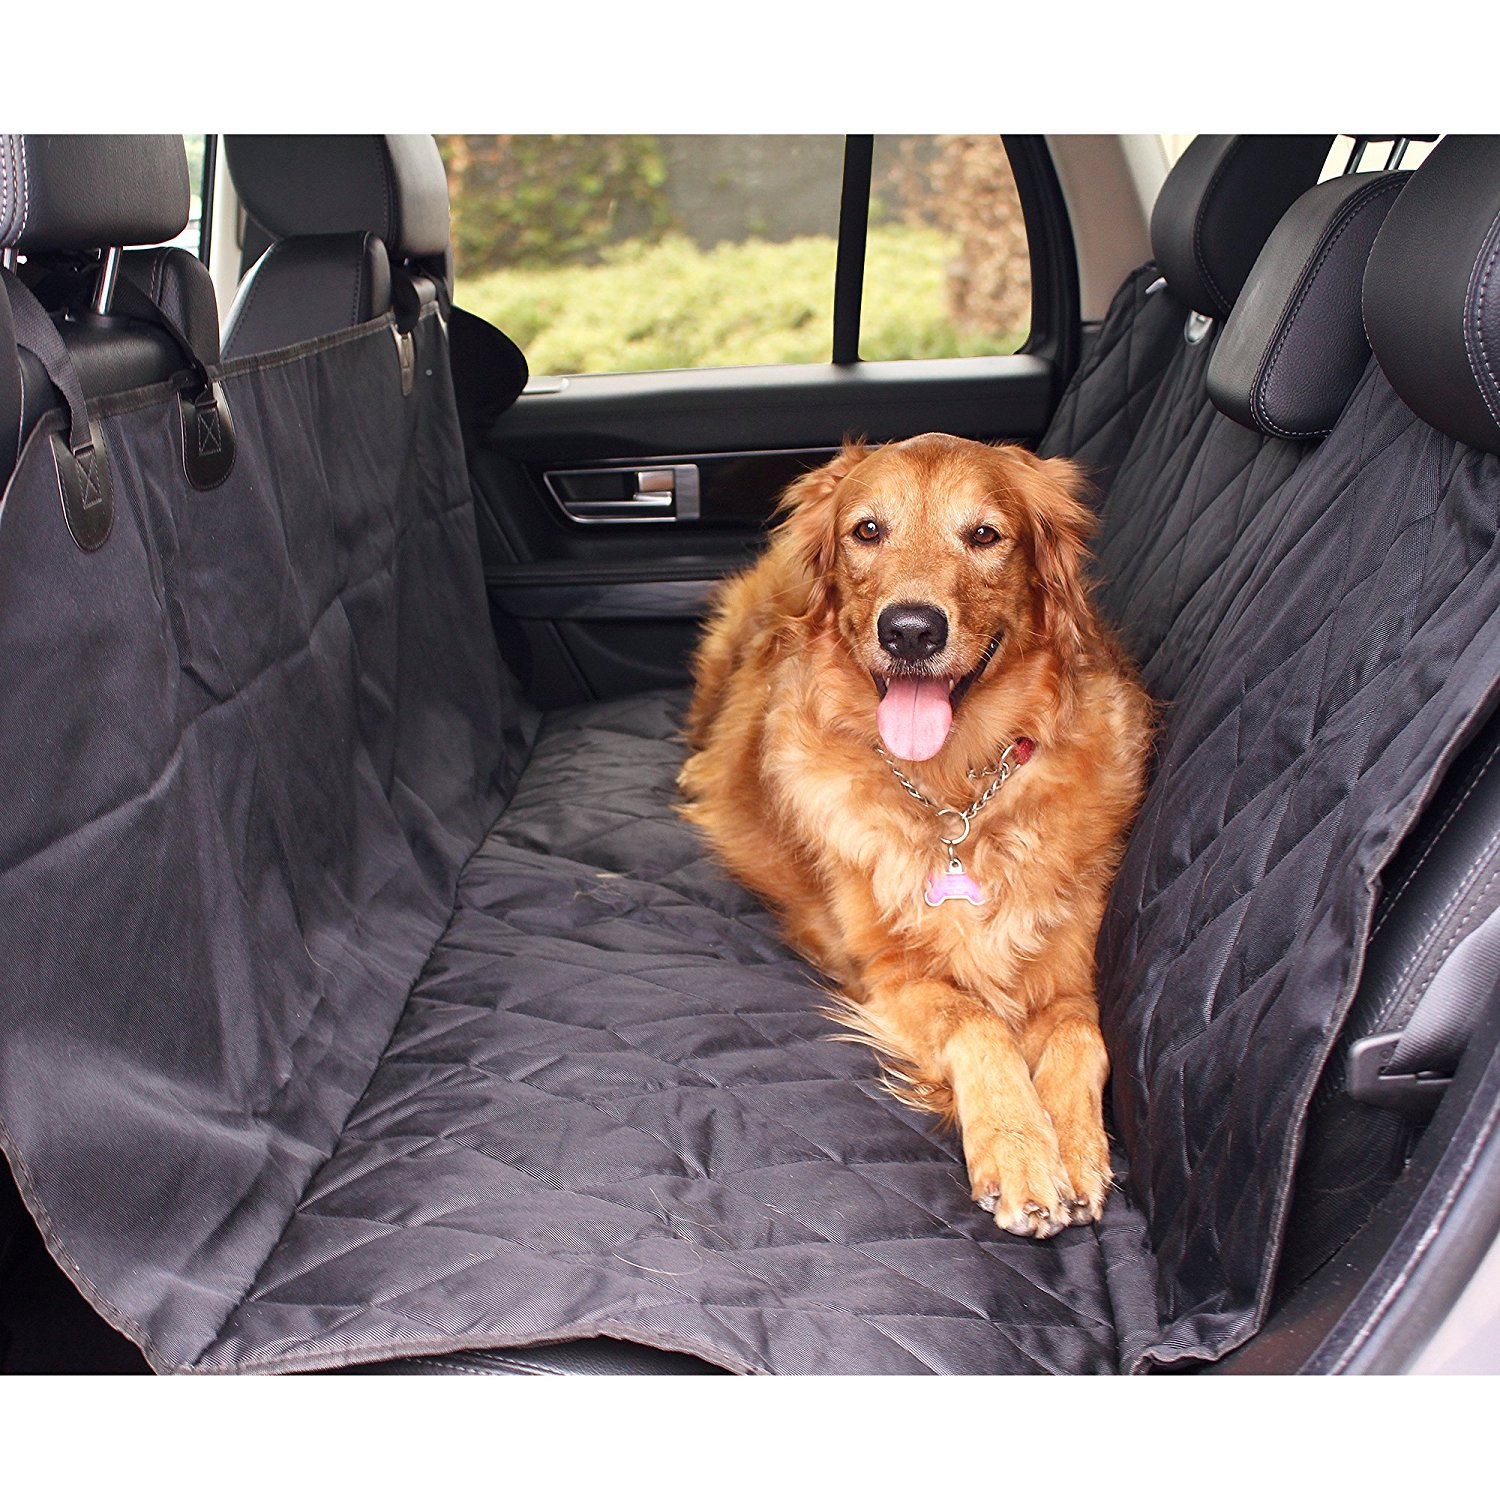 Incredible Barksbar Luxury Pet Car Seat Cover With Seat Anchors For Onthecornerstone Fun Painted Chair Ideas Images Onthecornerstoneorg